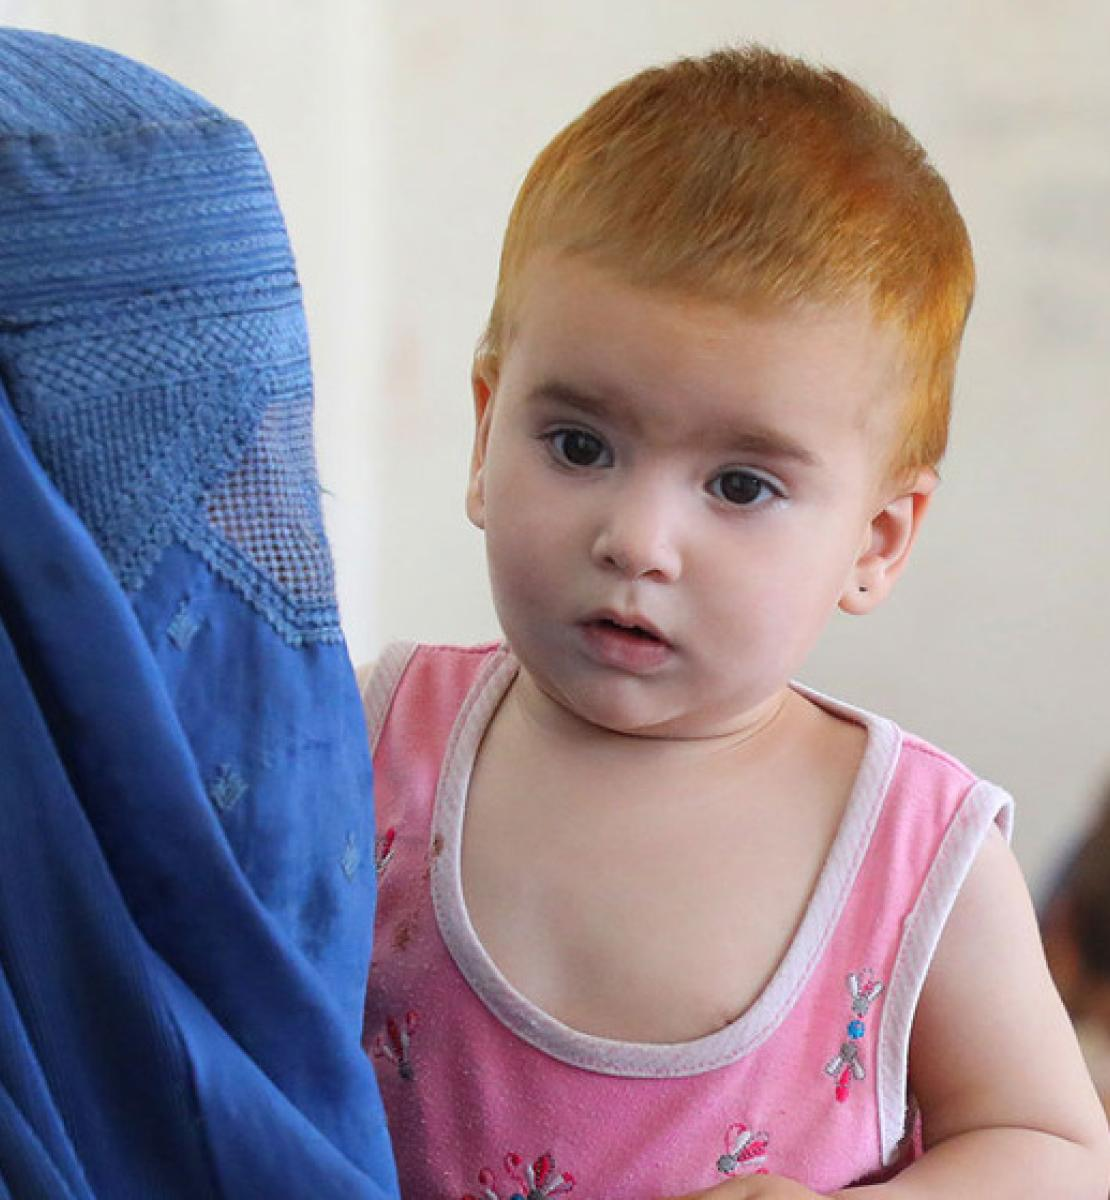 A mother in the forefront is shown wearing a headdress and face as she holds her baby and in the background is another mother and child.